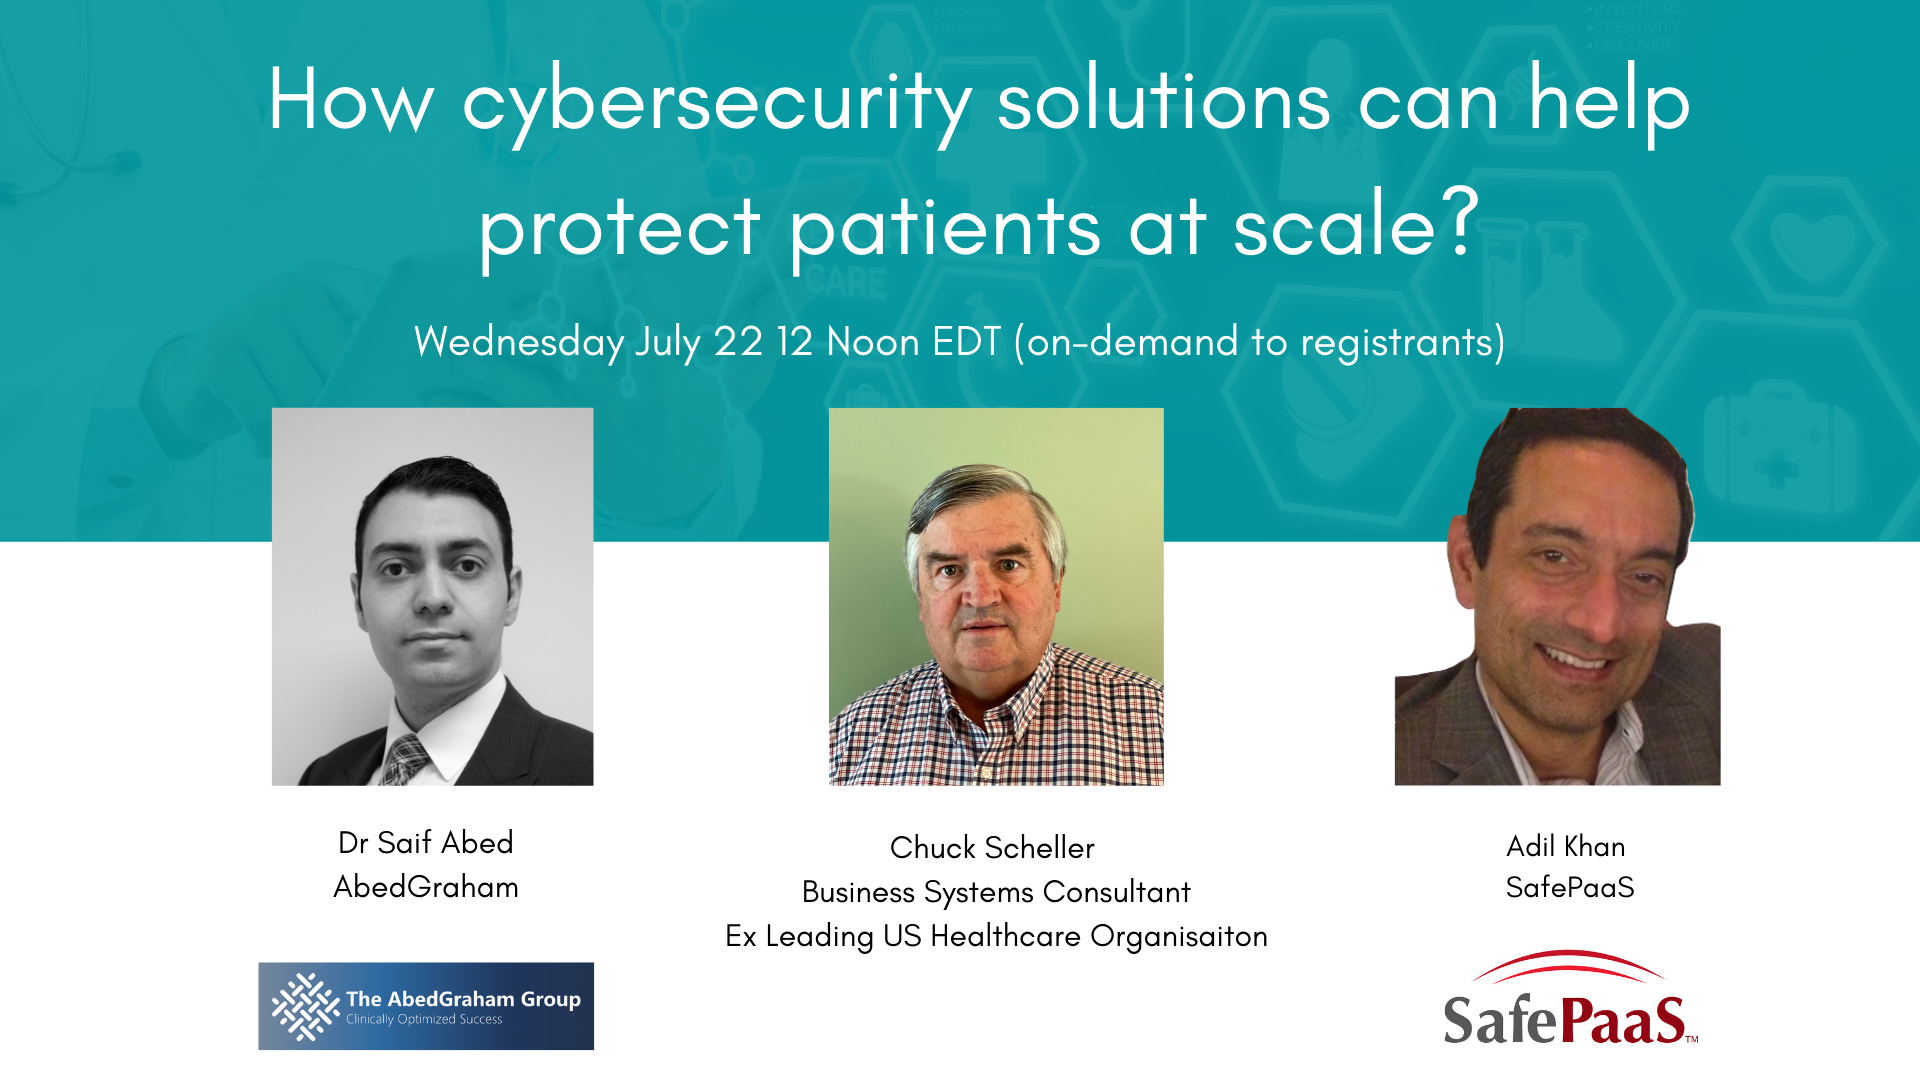 How cybersecurity solutions can help protect patients at scale?